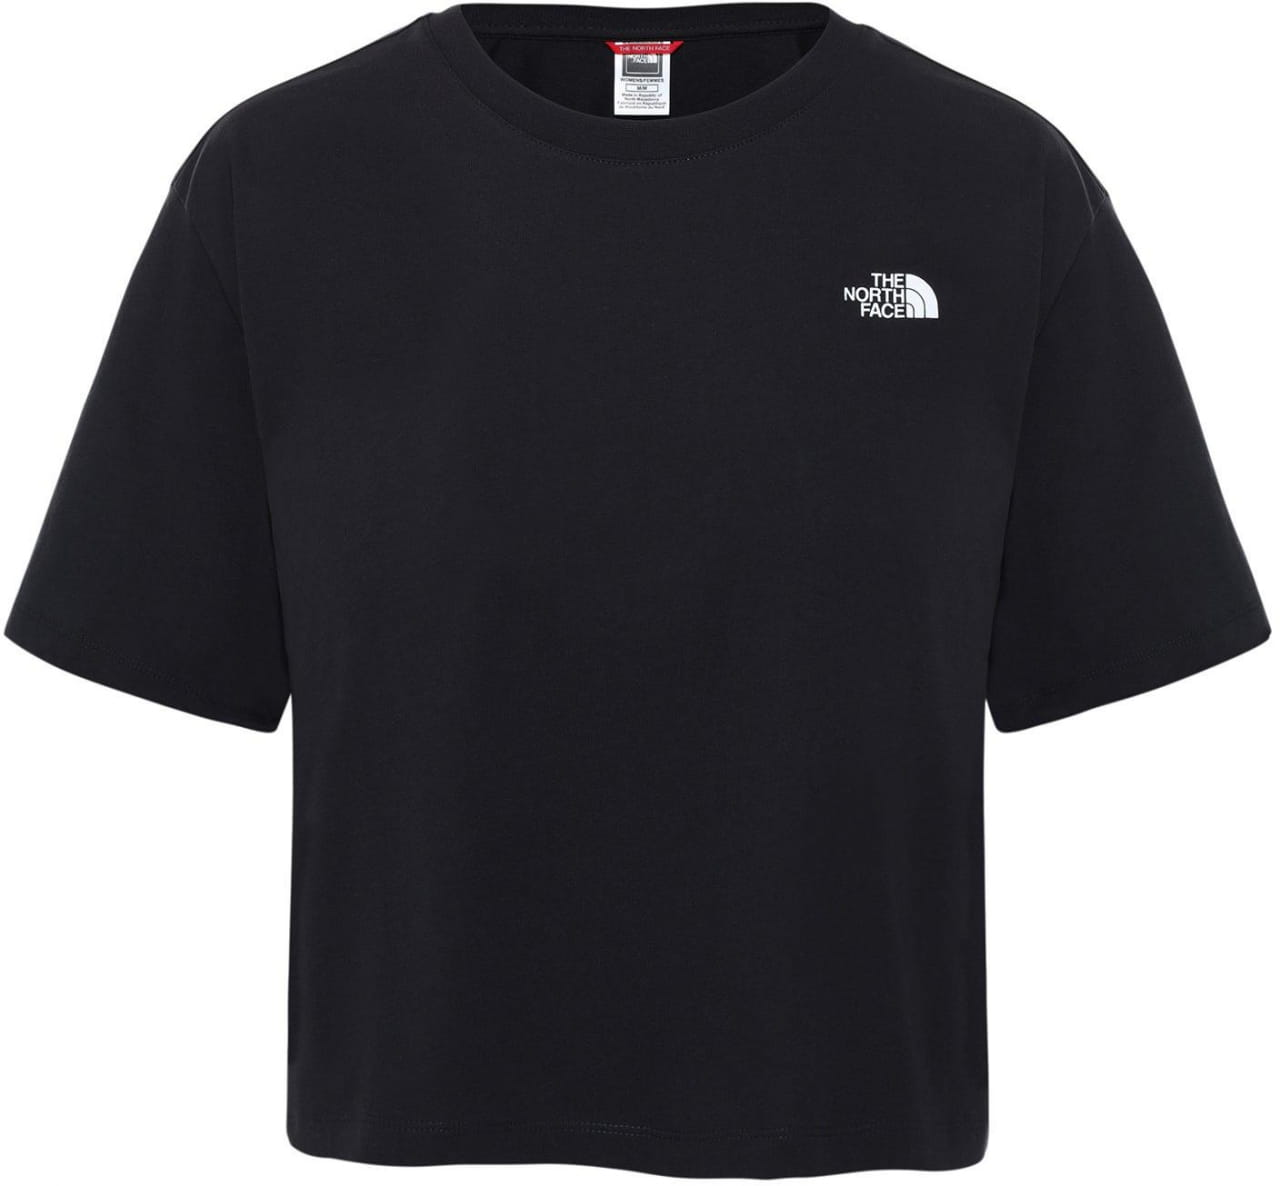 T-Shirts The North Face Women's Cropped Simple Dome T-Shirt